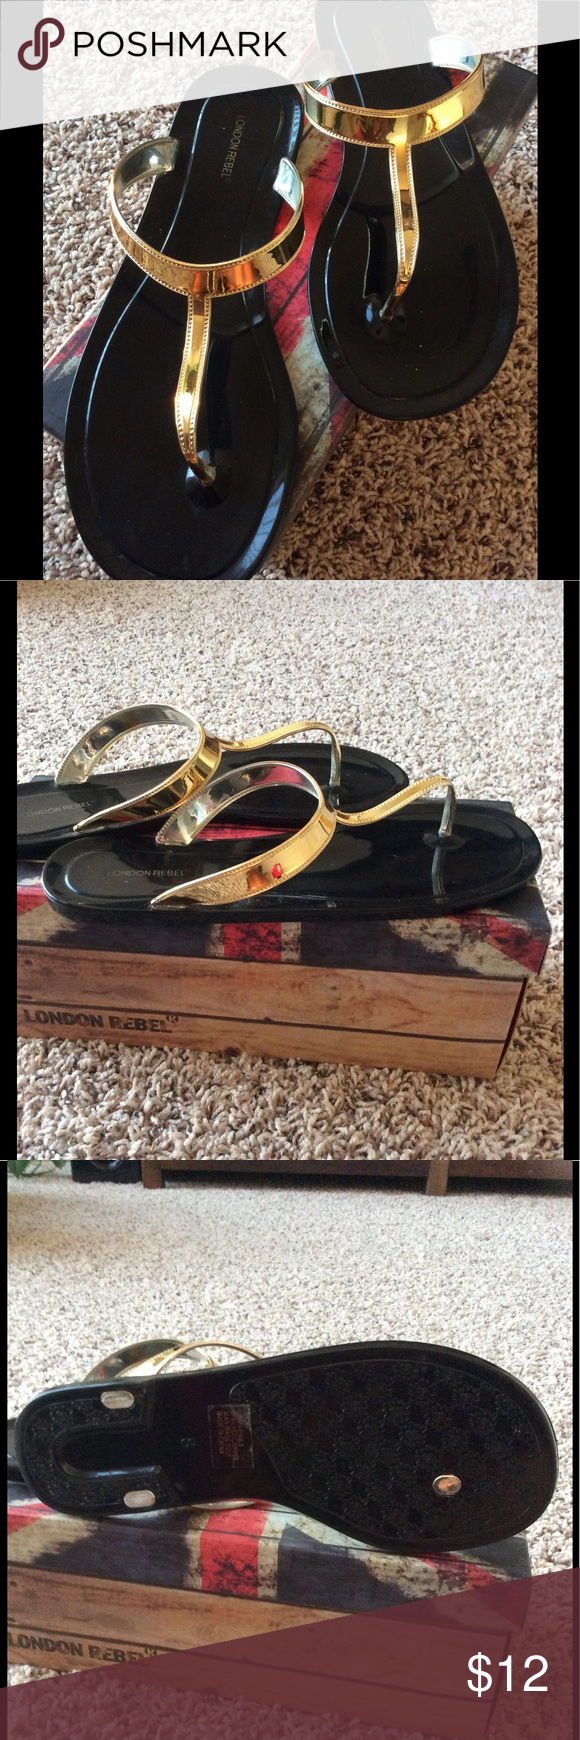 🇬🇧 London Rebel Flip Flops Black and gold plastic flip flops. Hard, flexible plastic. Fit true to size. Great for the pool or beach. Excellent condition. London Rebel Shoes Sandals